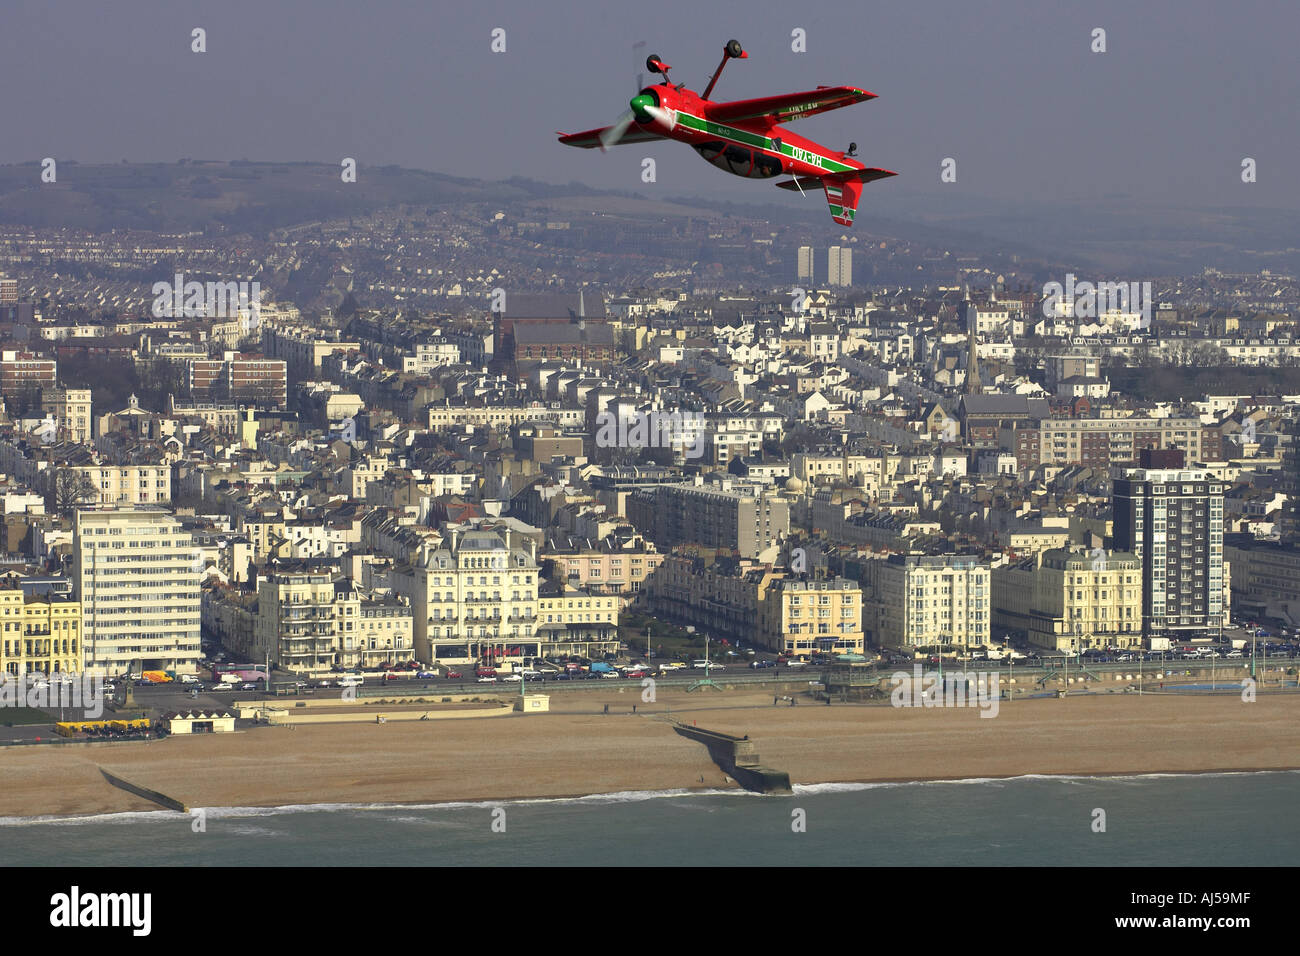 suhkoi su 29 being flown by aerobatic ace alan cassidy over the sea of the coast of brighton england - Stock Image